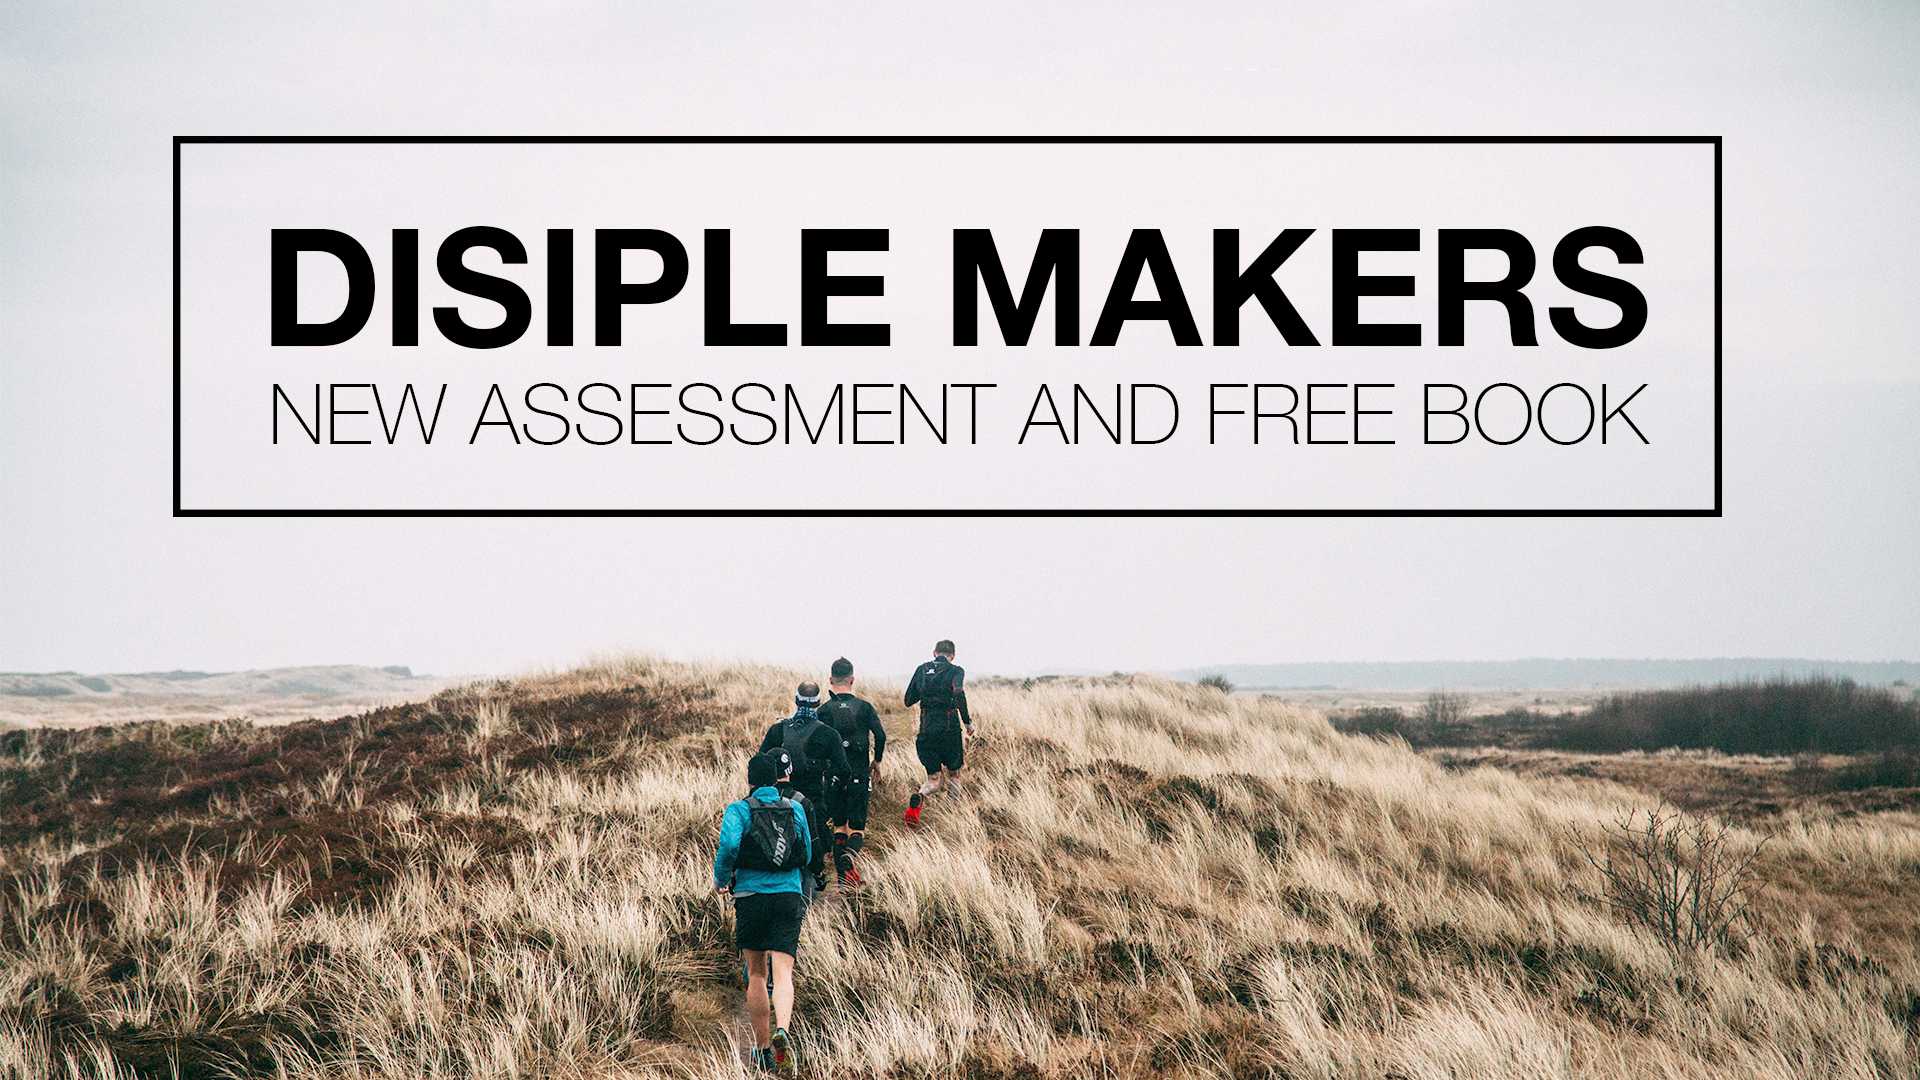 Disciple Makers: New Assessment and Book